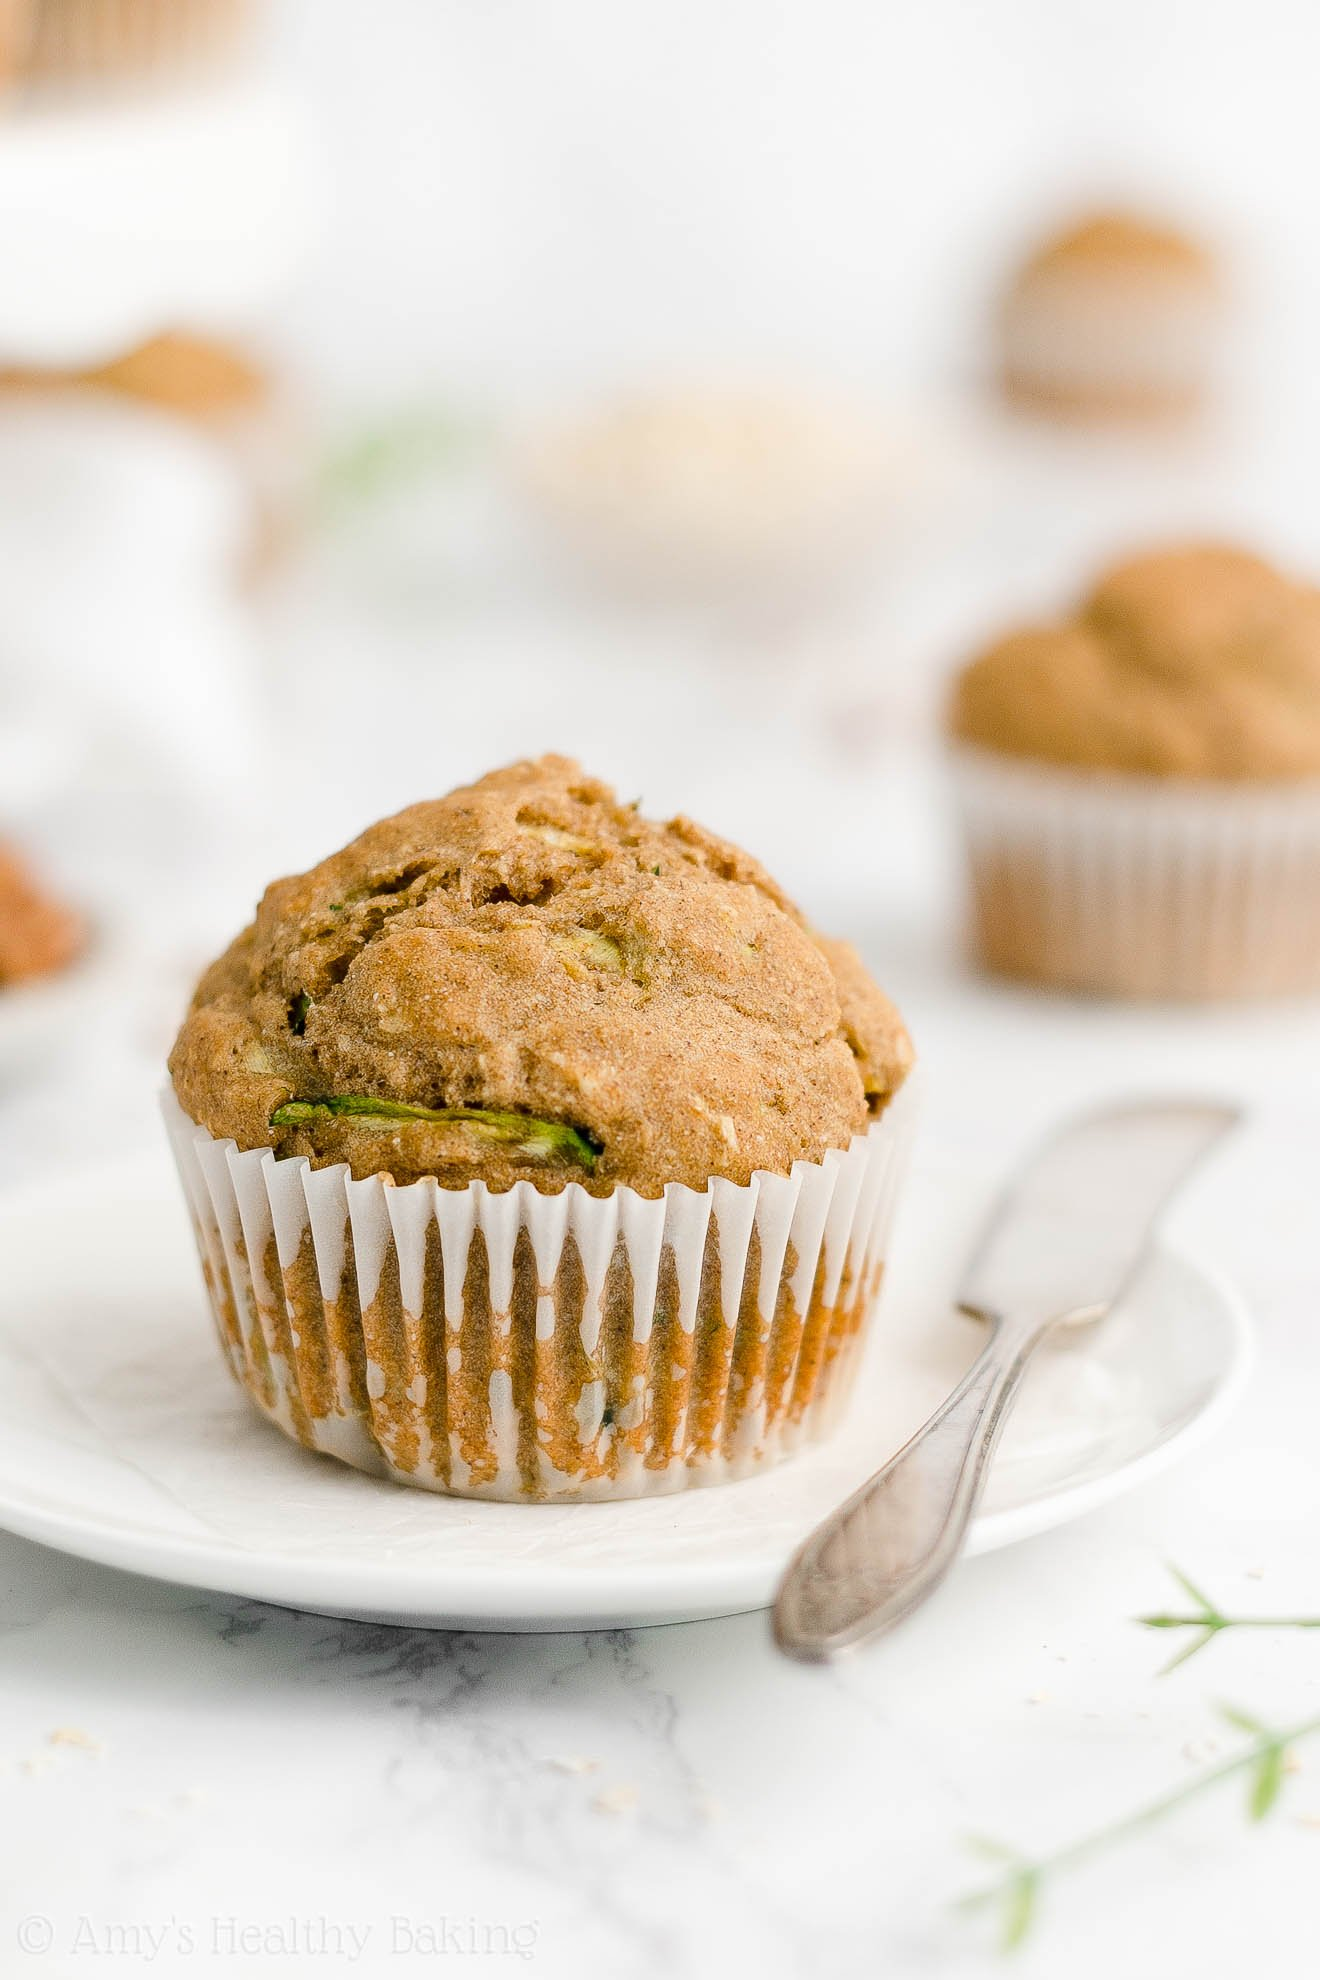 Best Easy Healthy Gluten Free Low Fat Moist Spiced Zucchini Oatmeal Muffins